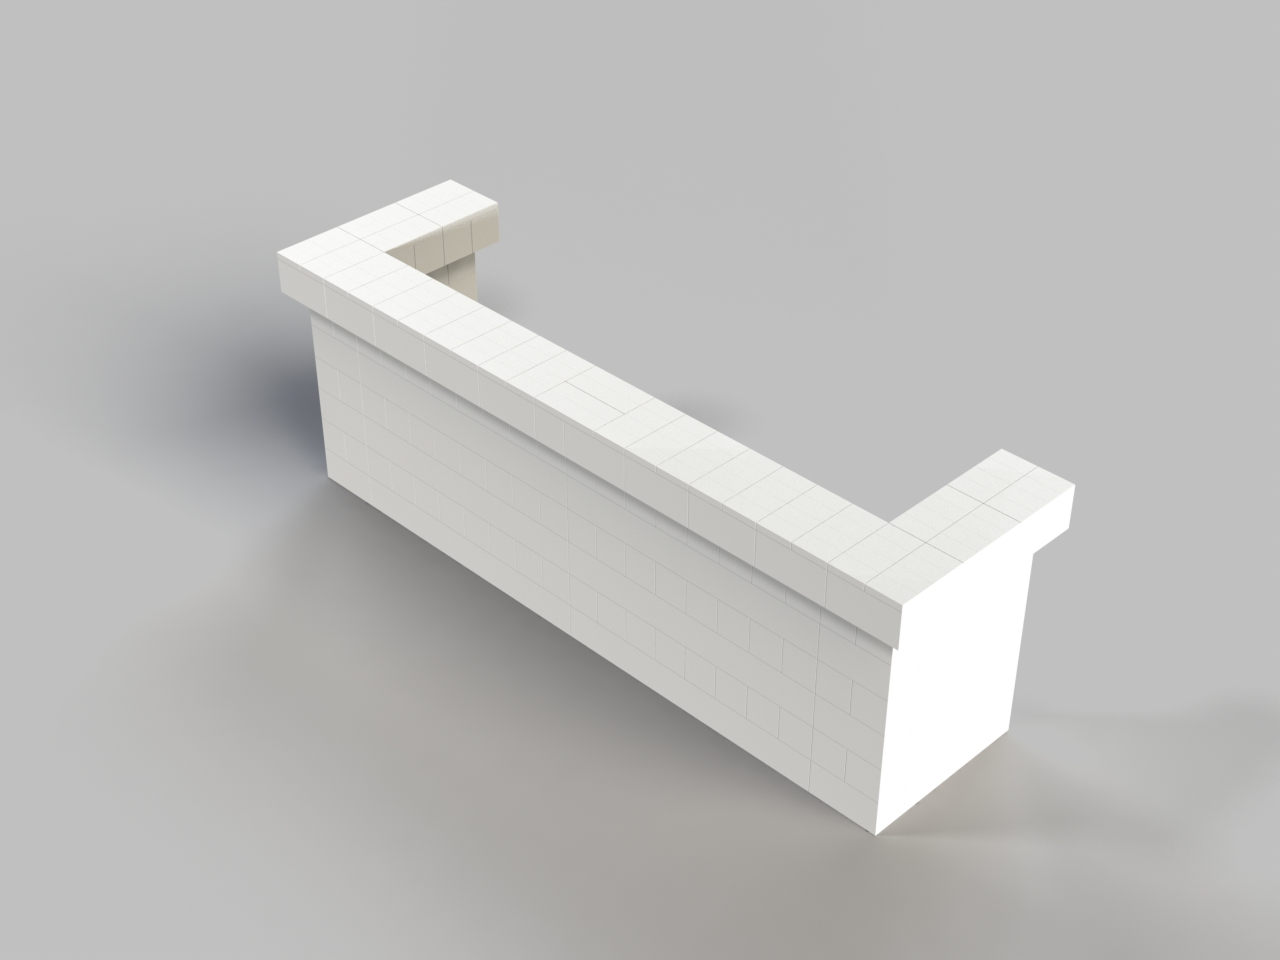 10ft, 1 Layer, All Sides Cantilevered Bar